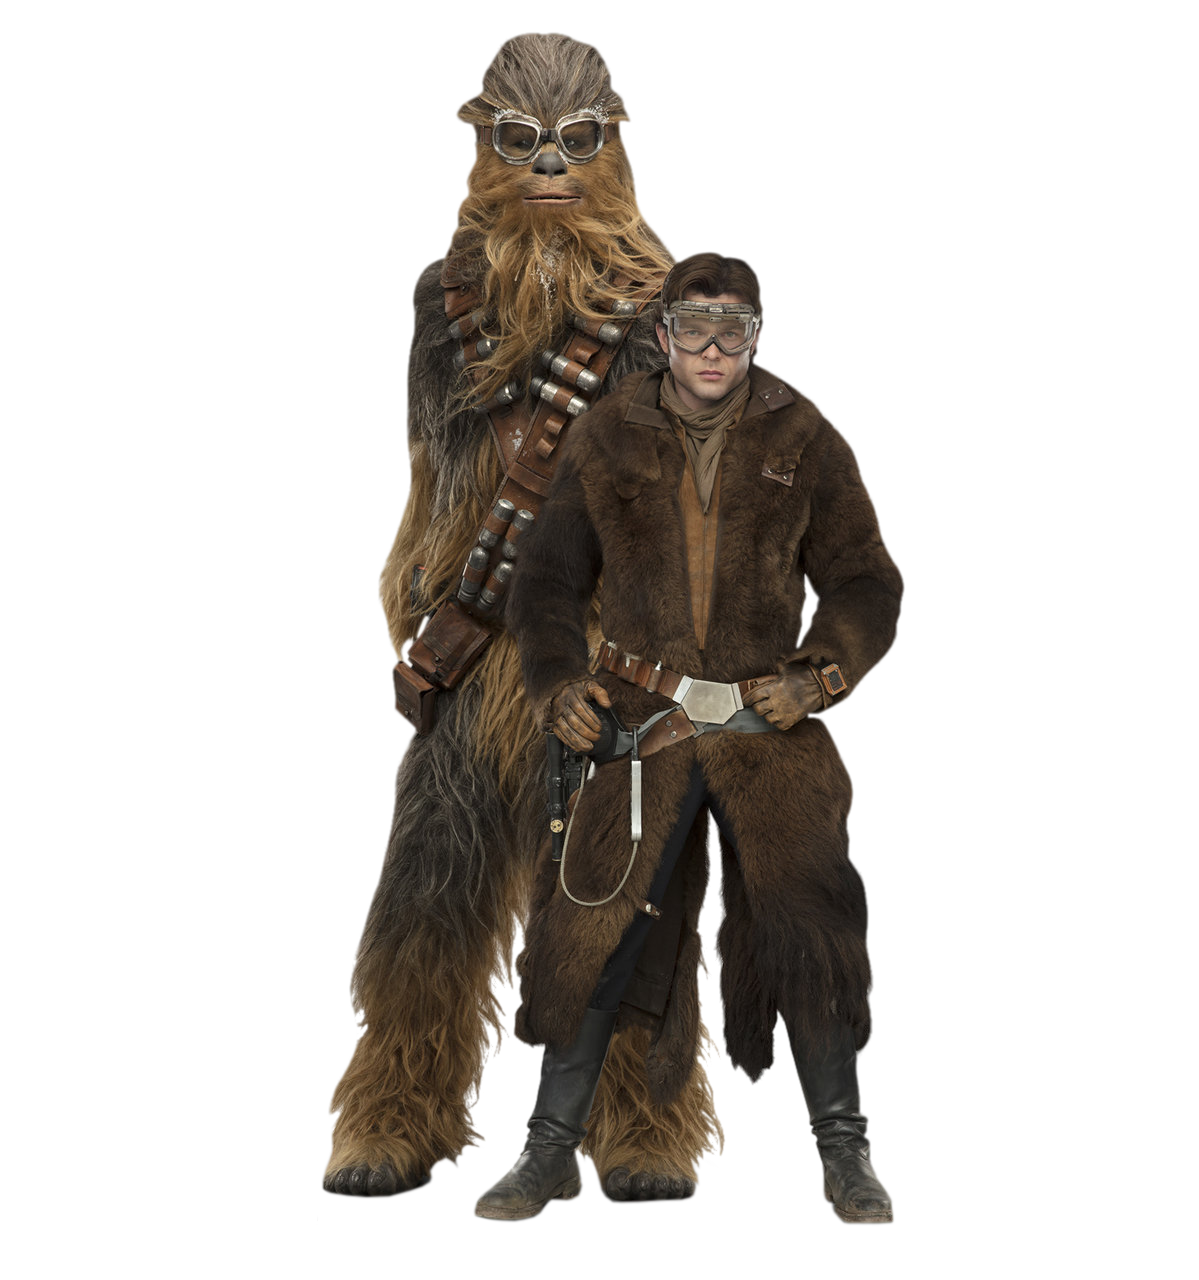 Star wars chewbacca png. Han and chewie solo